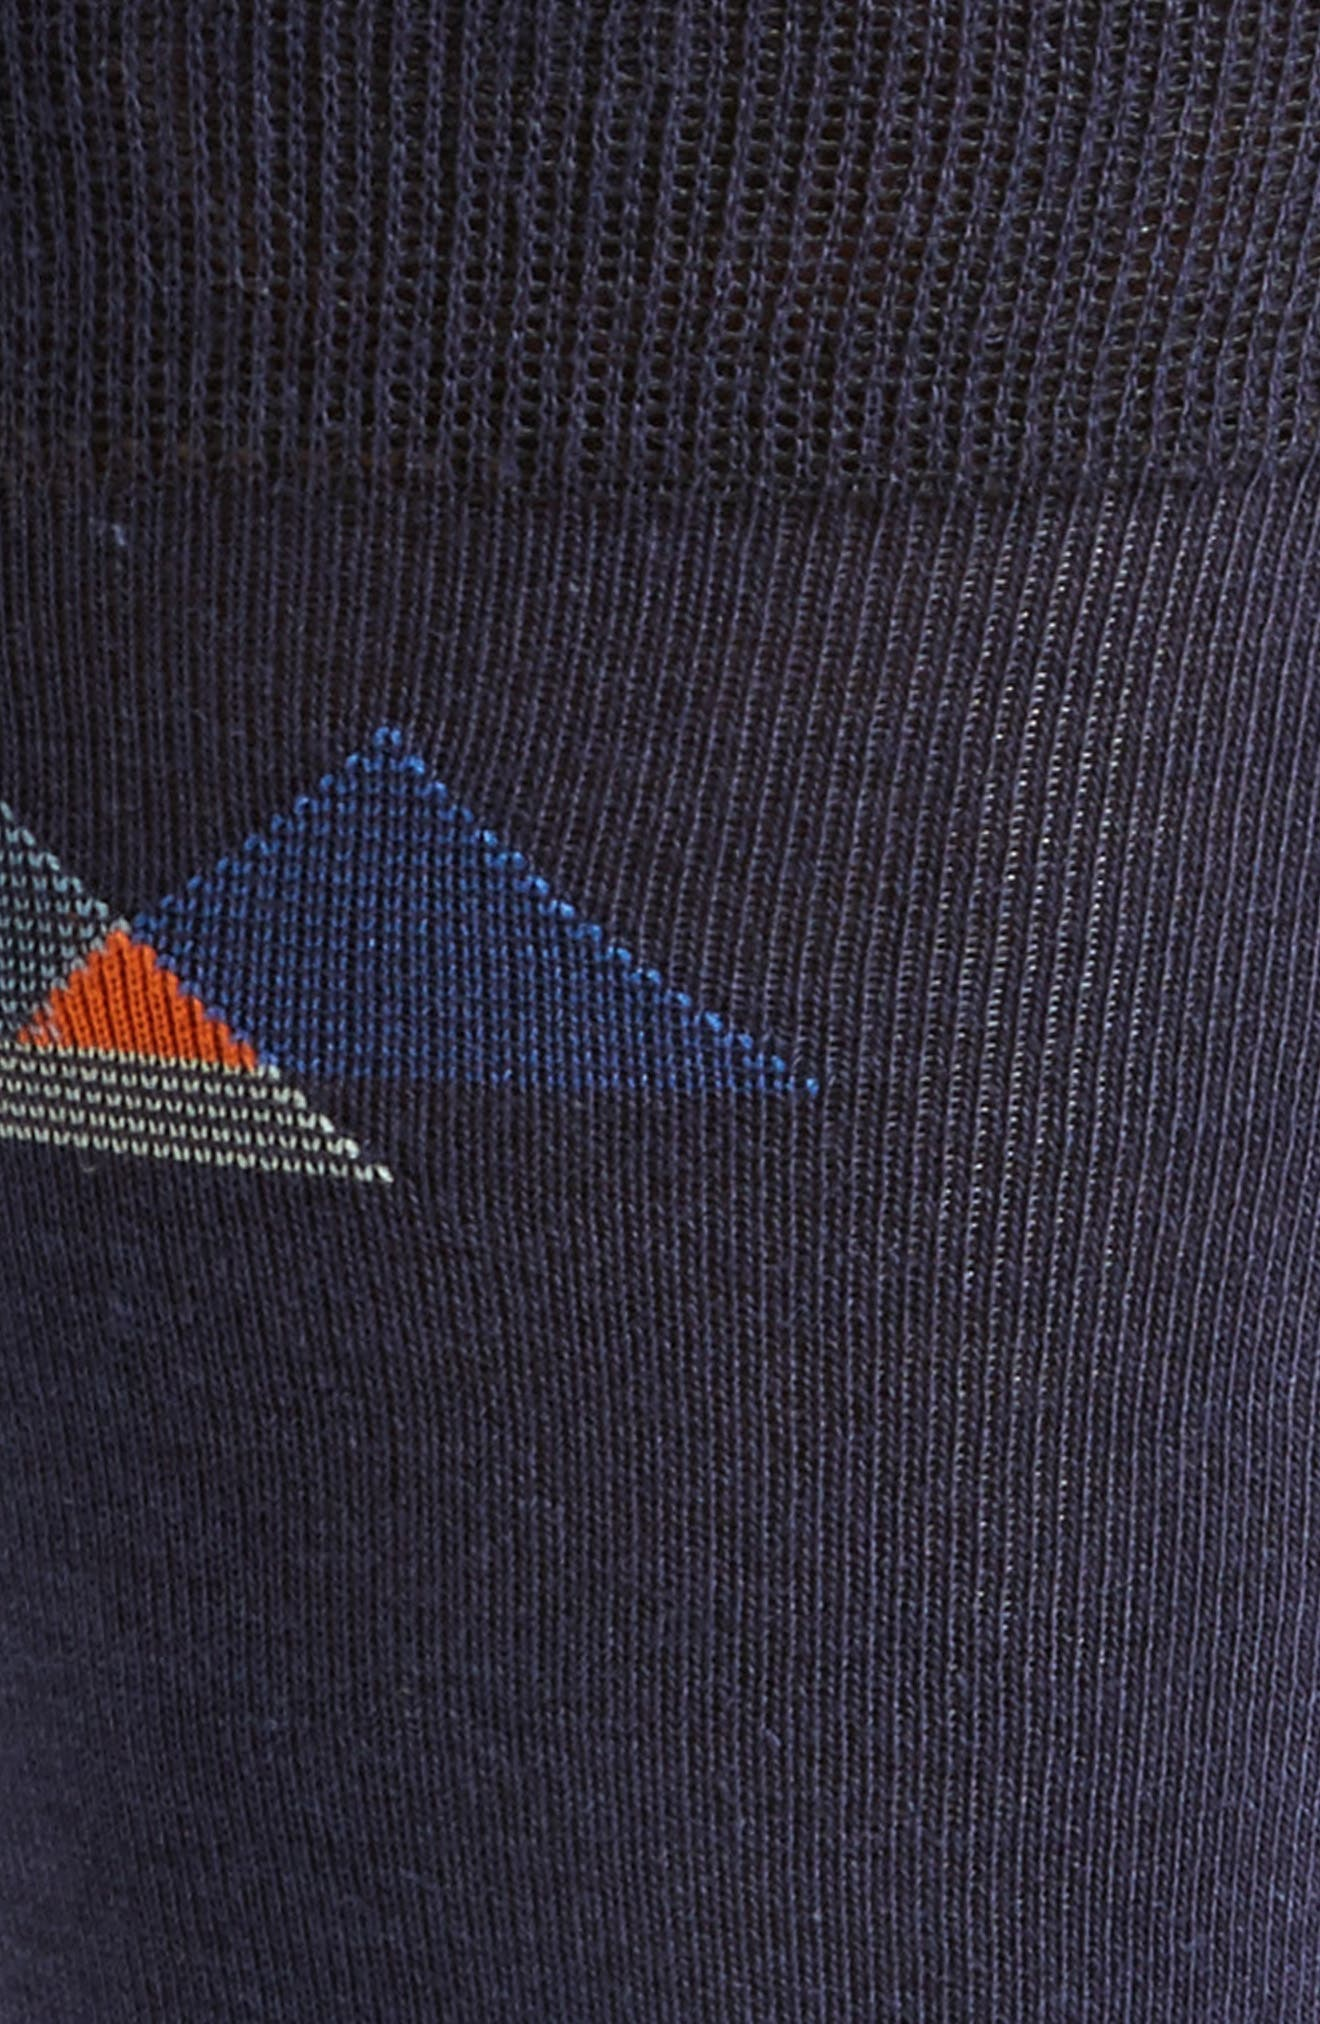 Alternate Image 2  - Cole Haan Triangles Socks (3 for $30)